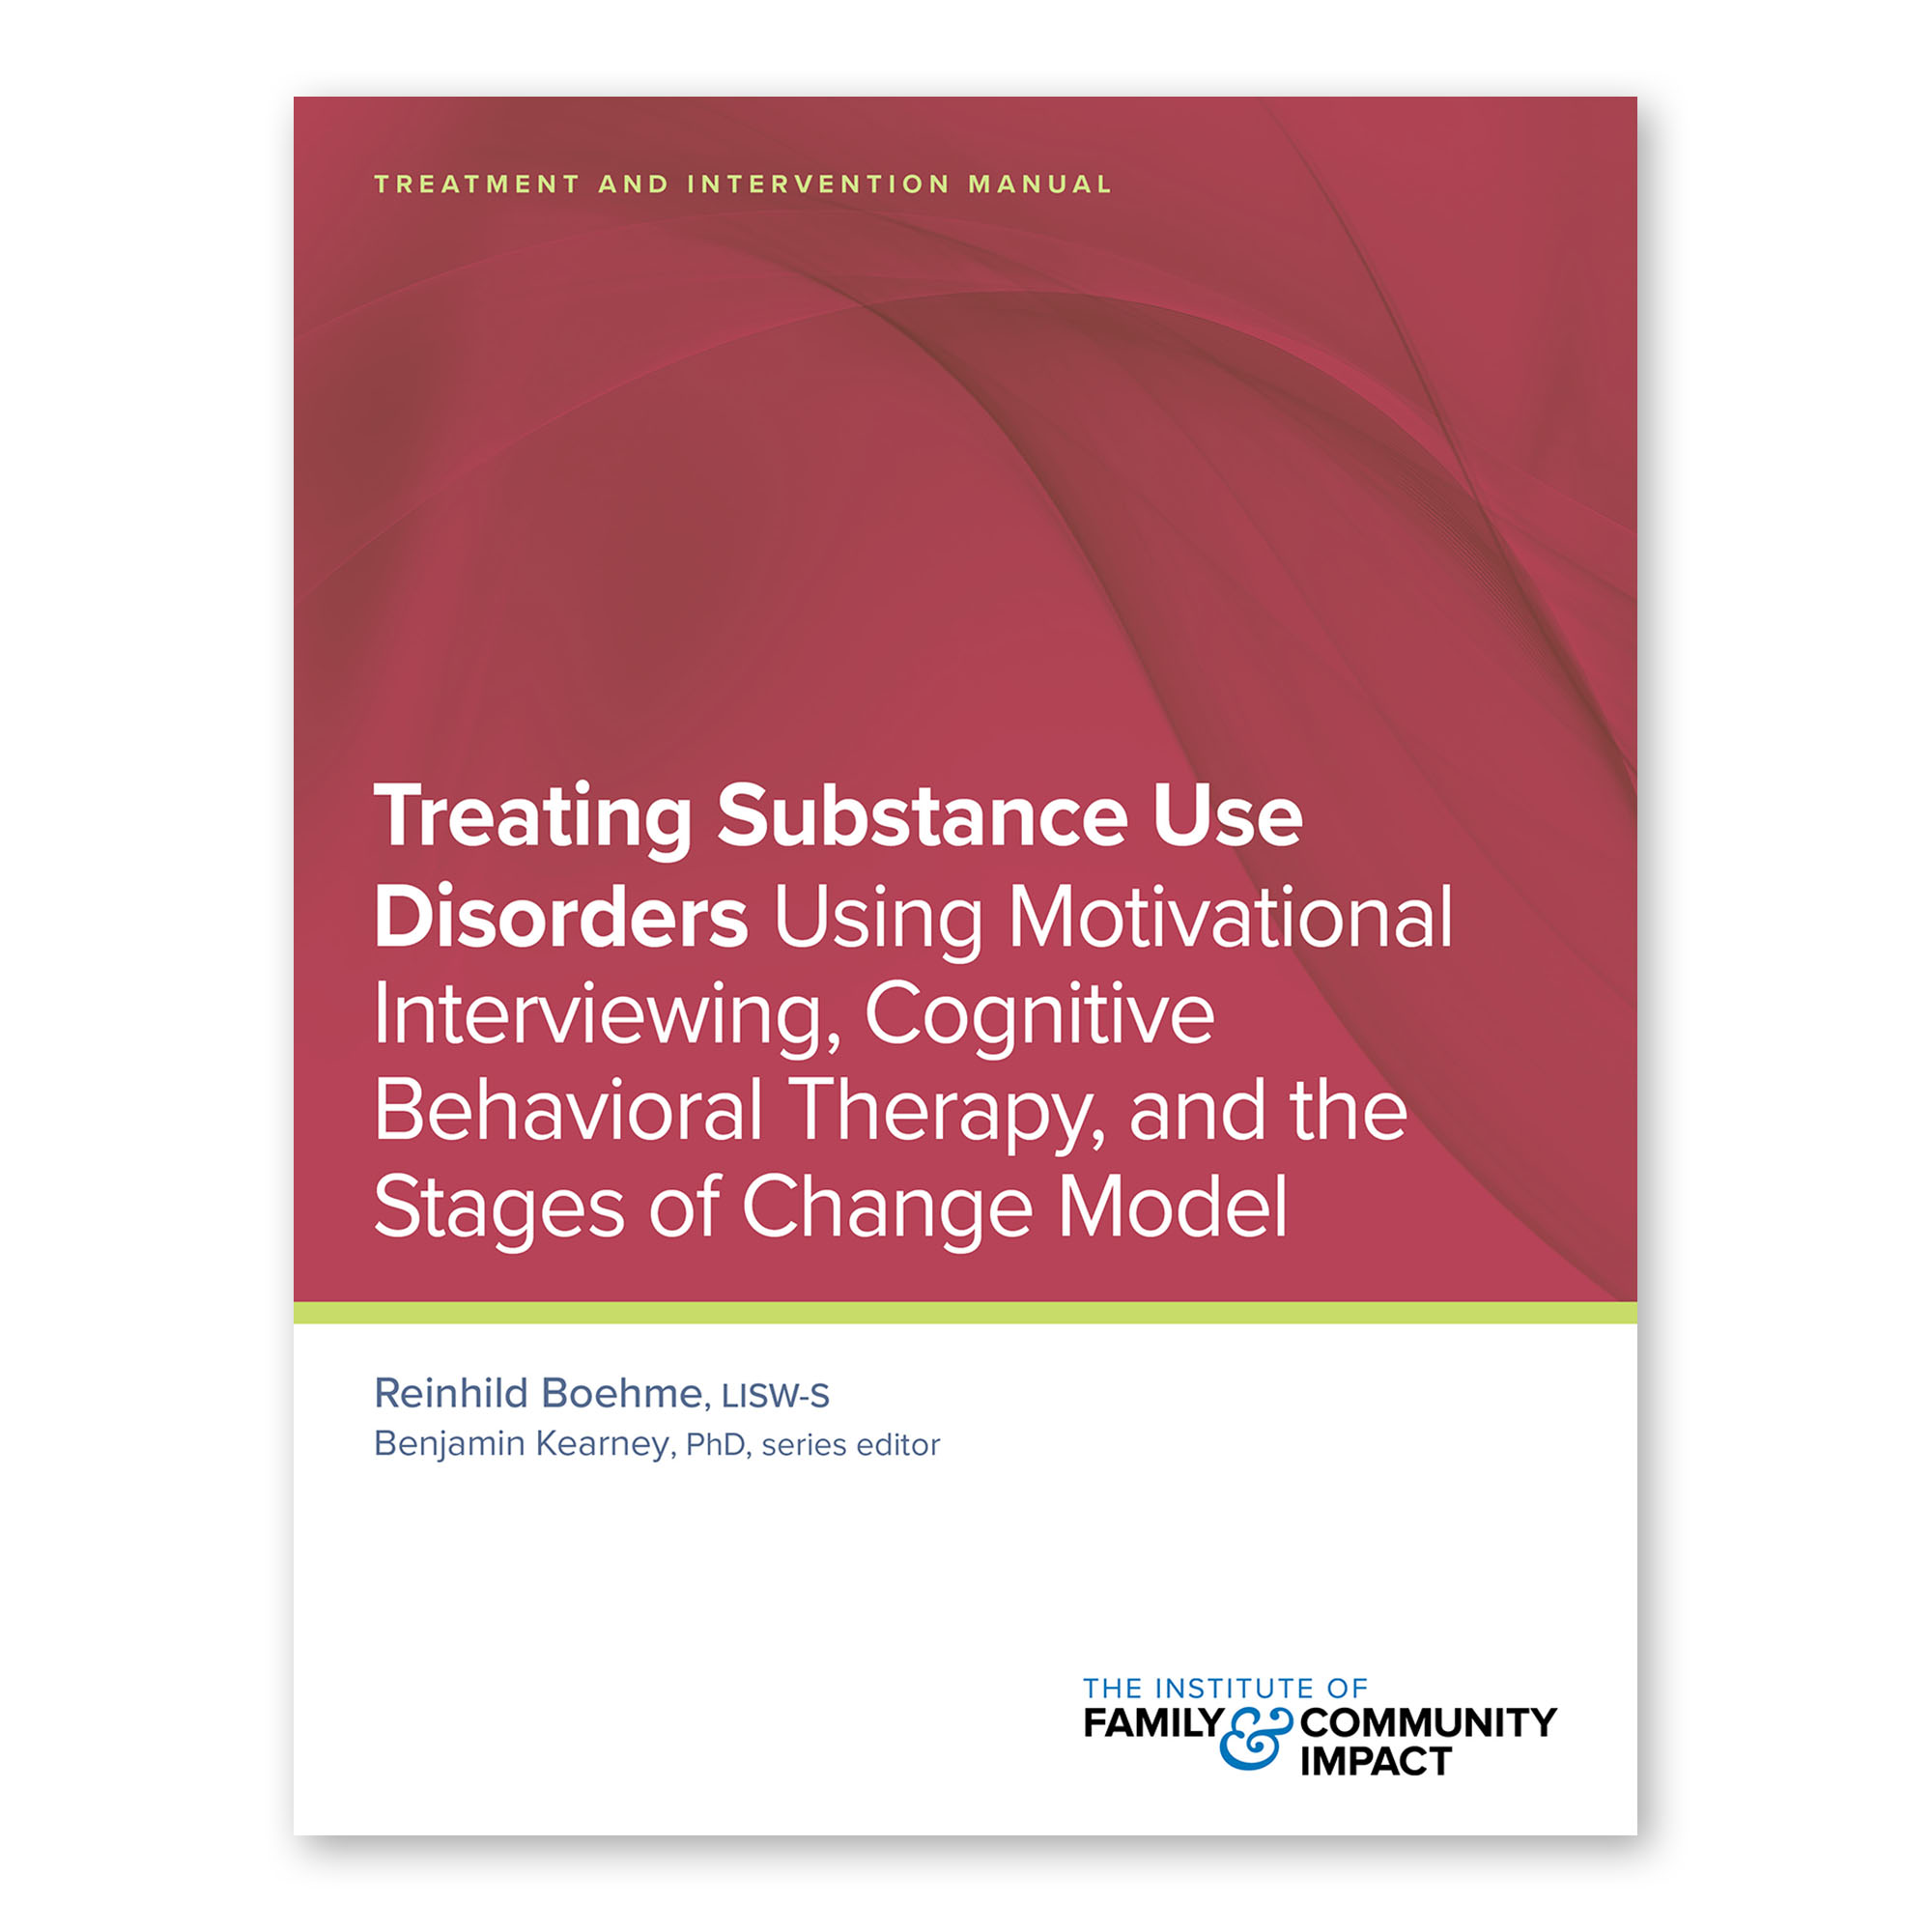 Treating Substance Use Disorders Using Motivational